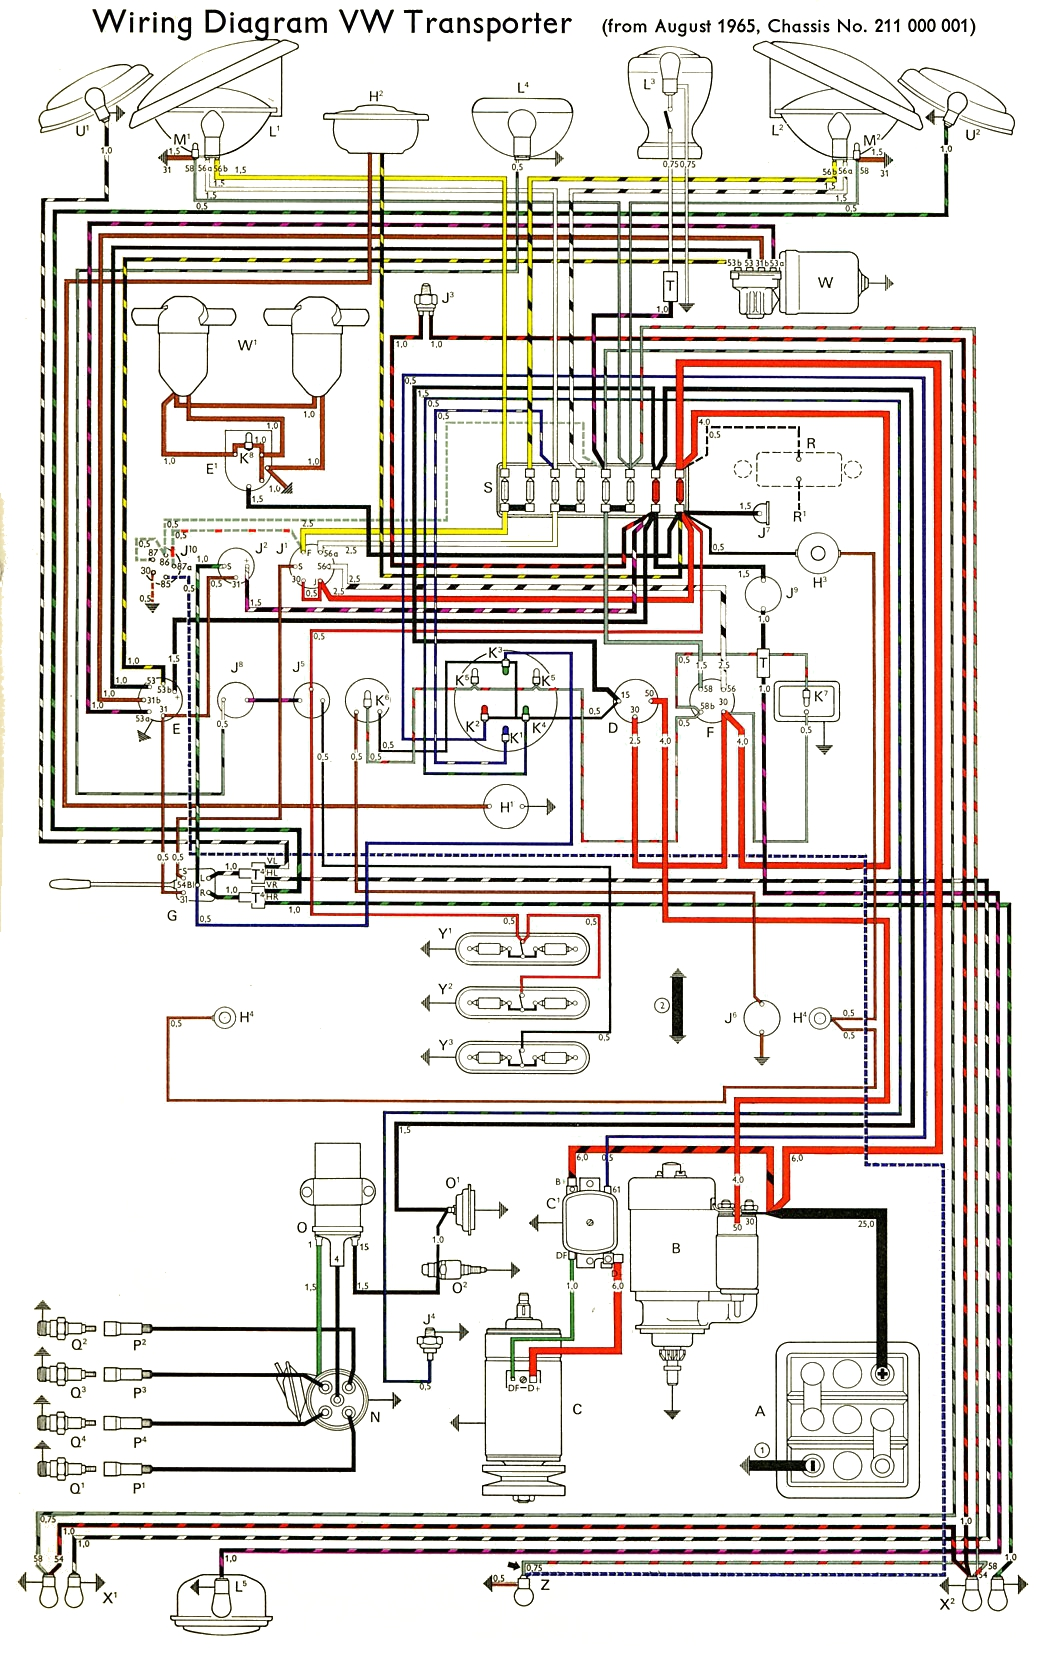 hight resolution of 1979 vw wiring harness opinions about wiring diagram u2022 1972 vw bus wiring diagram 79